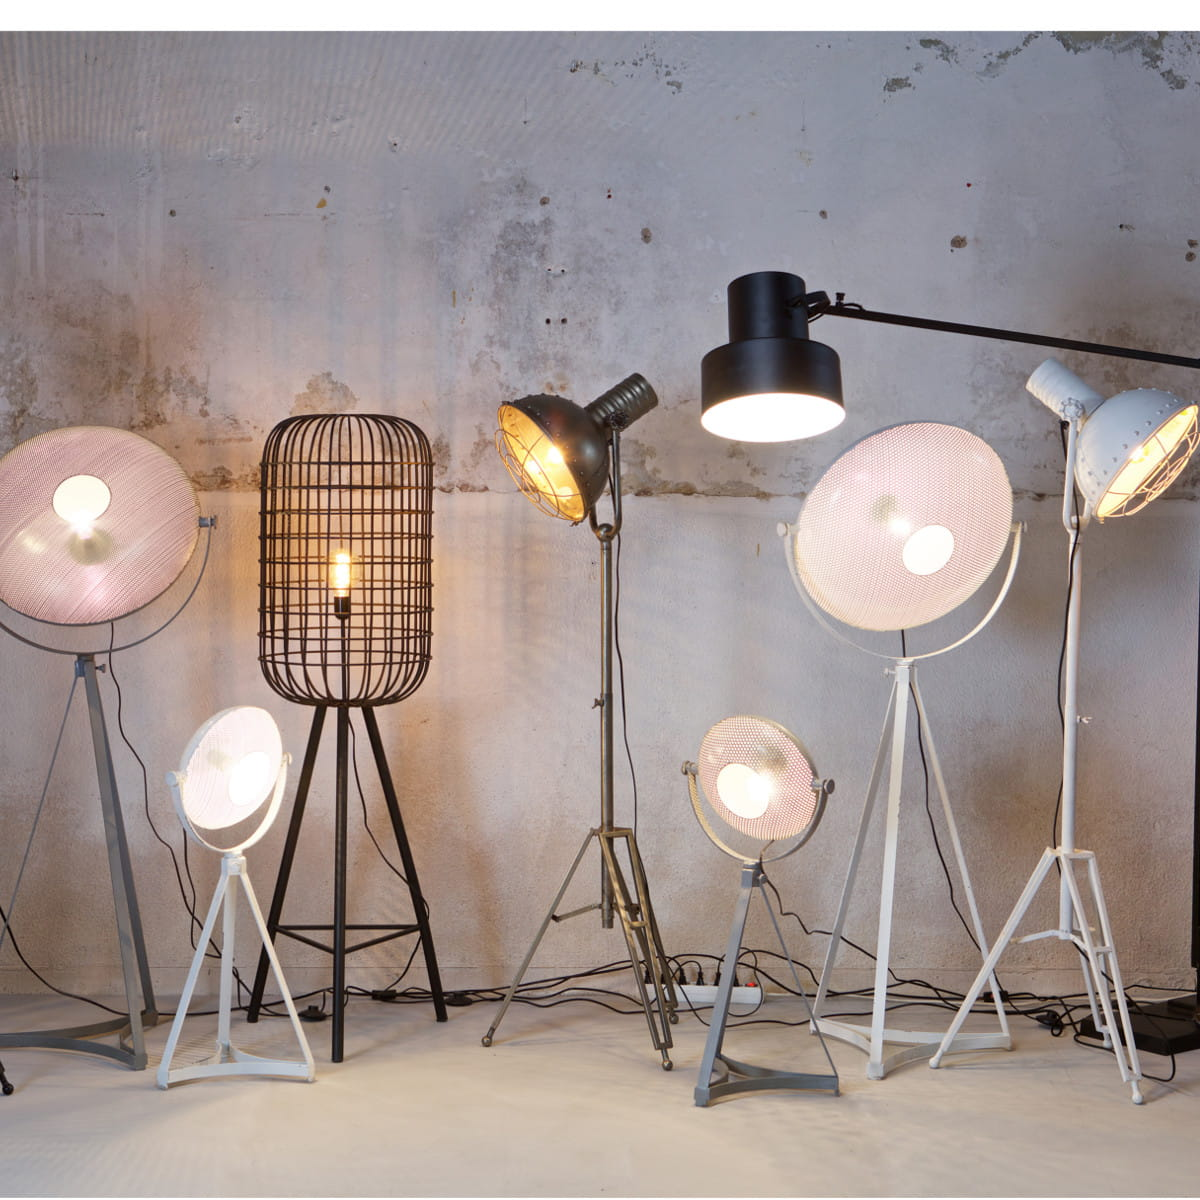 Floor lamp hurricane black be pure nordic decoration home floor lamp hurricane black be pure mozeypictures Image collections